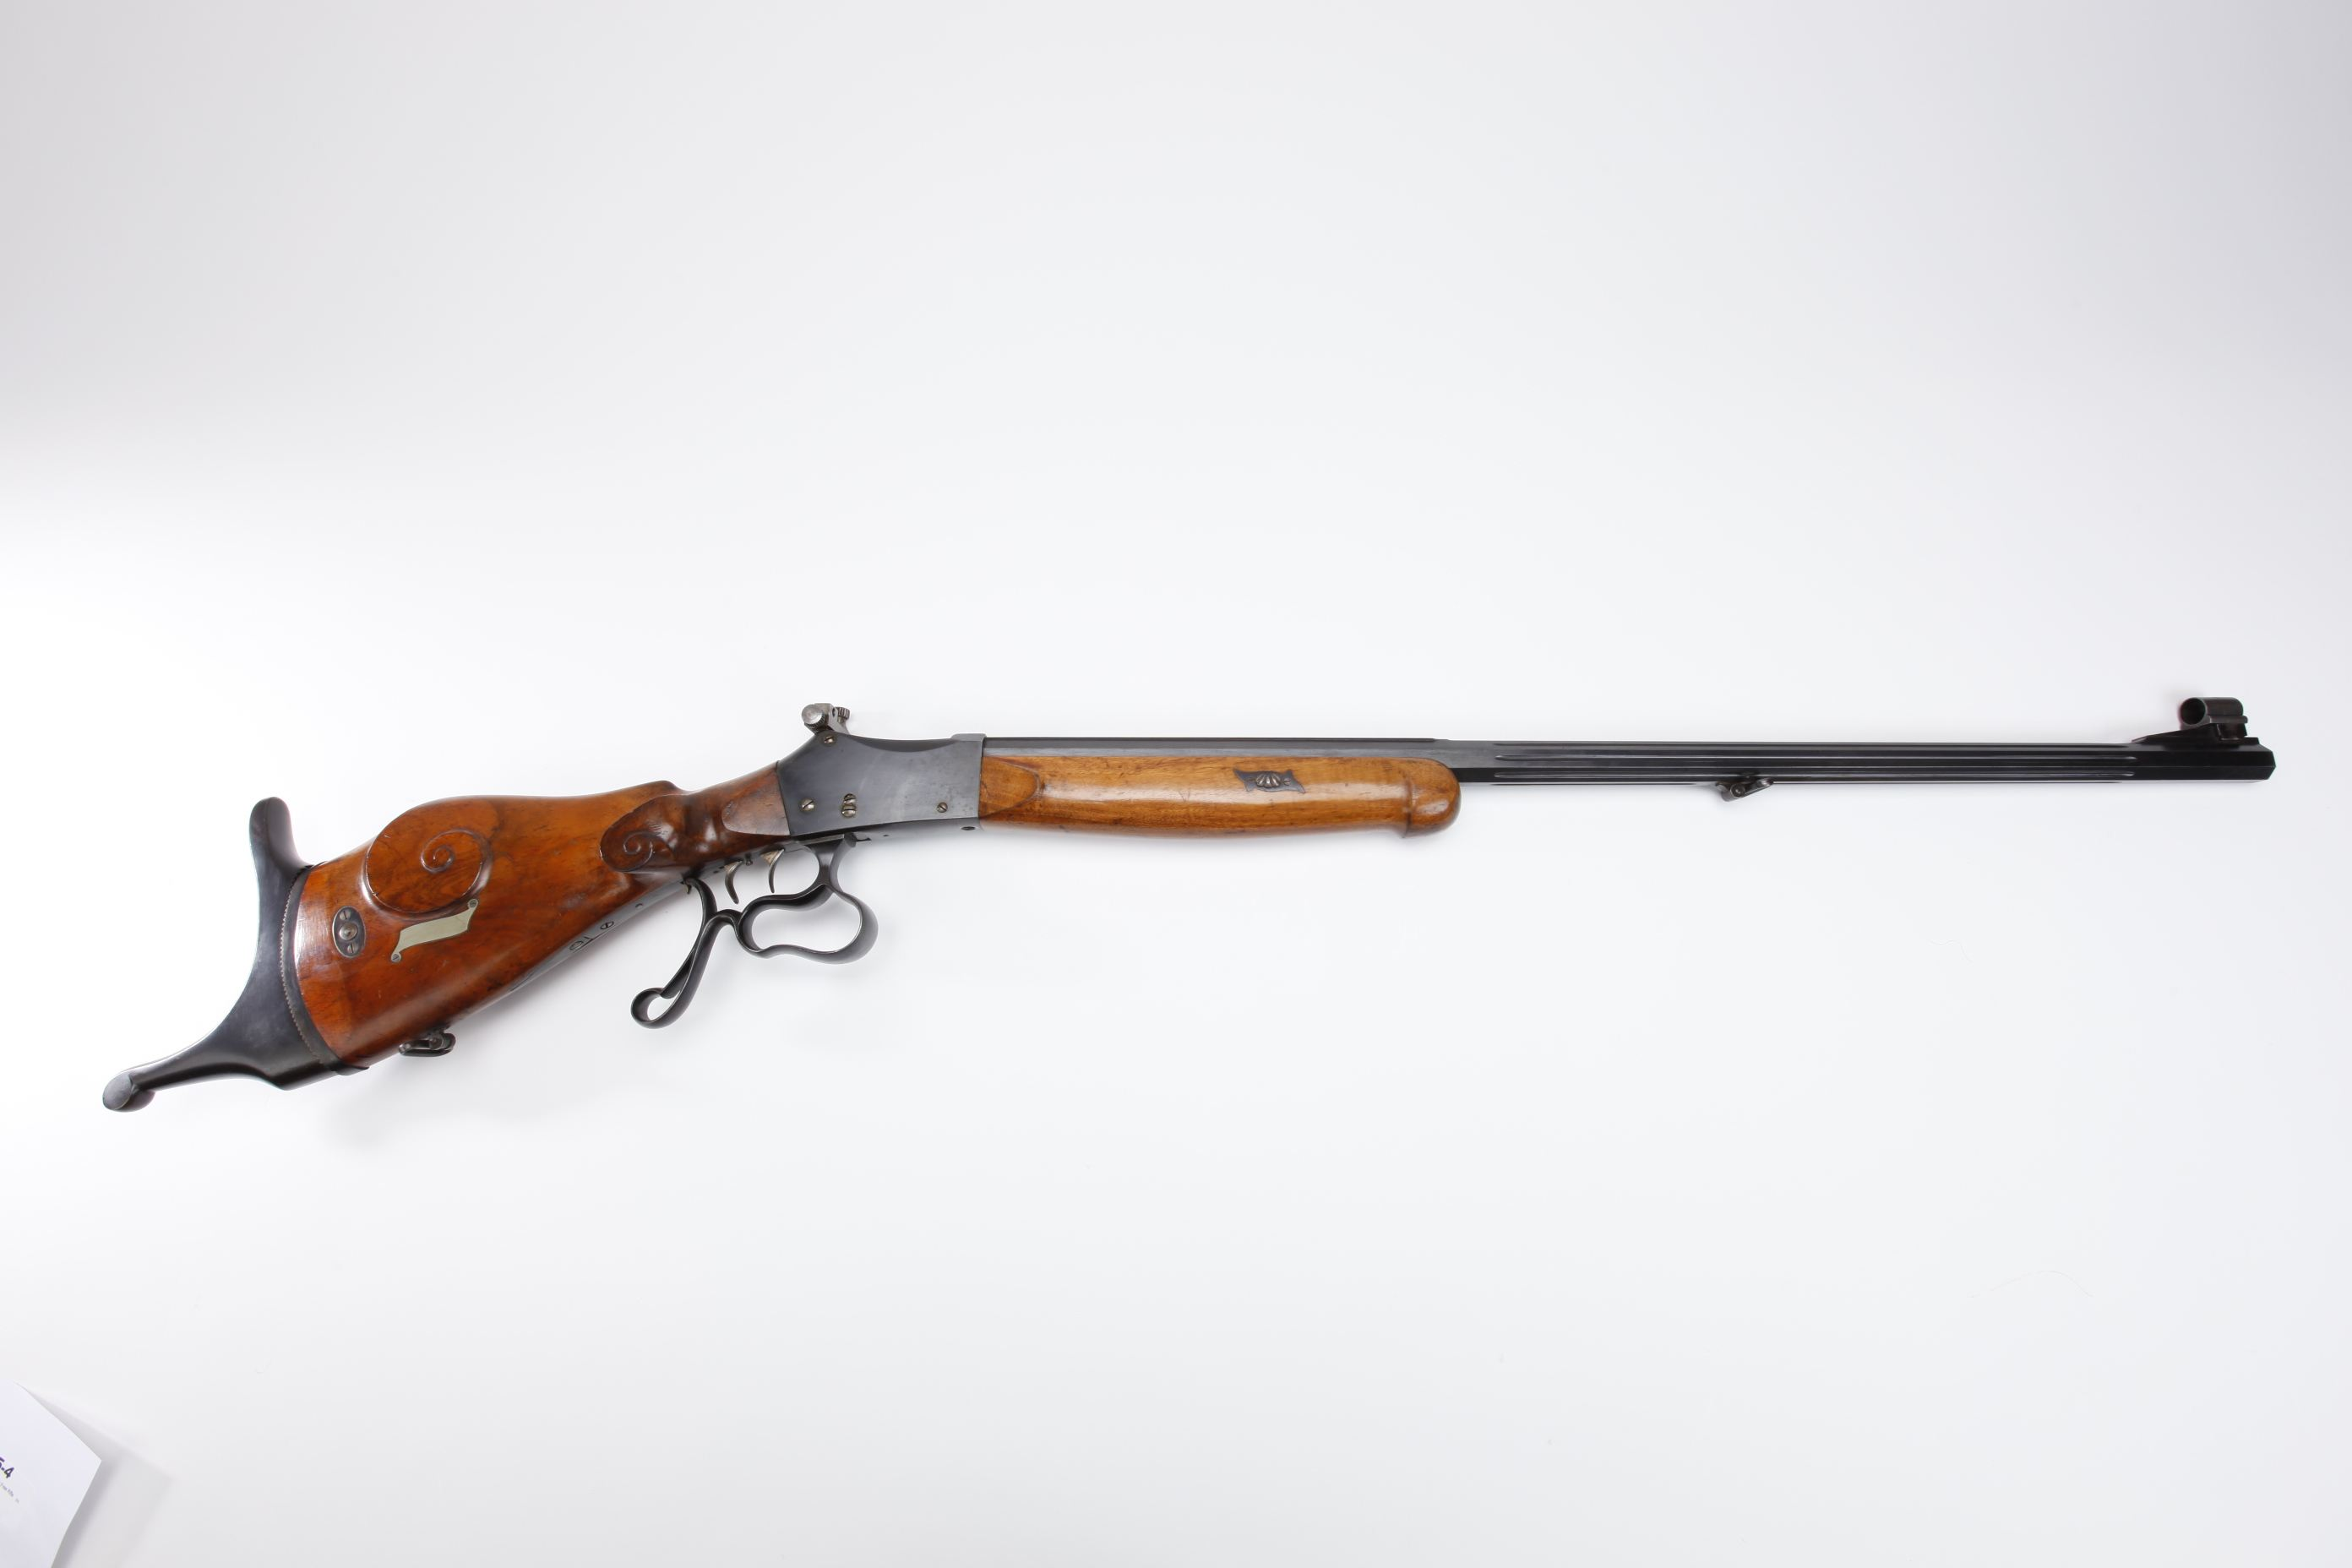 J. Blattman Peabody Martini Free Rifle